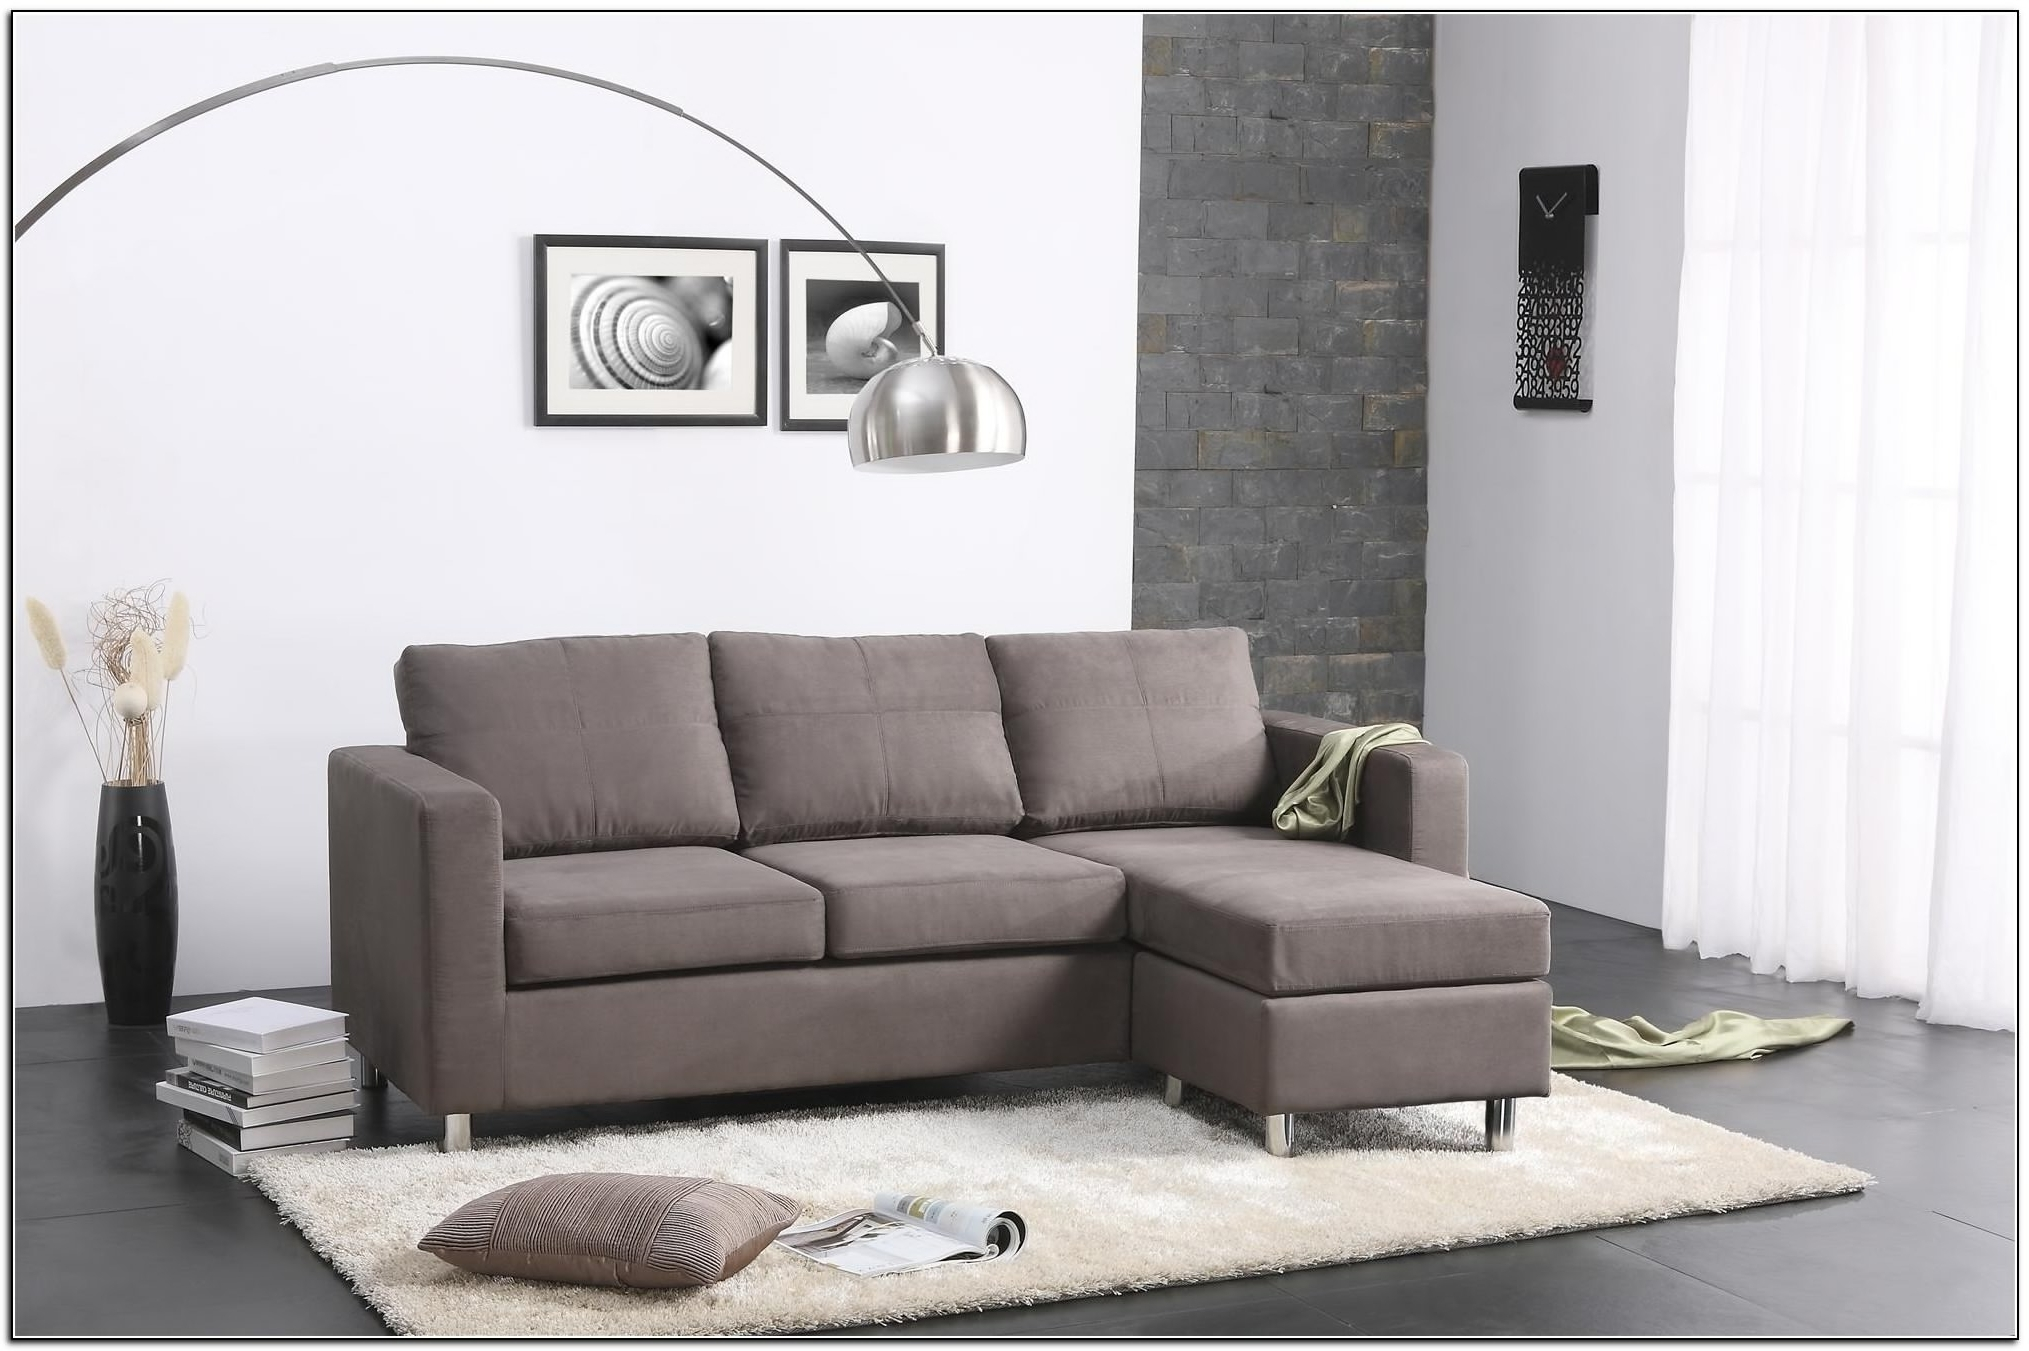 North Carolina Sectional Sofas For Best And Newest Sectional Sofa Design: Small Sectional Sofa Cheap Space Couch (View 11 of 15)